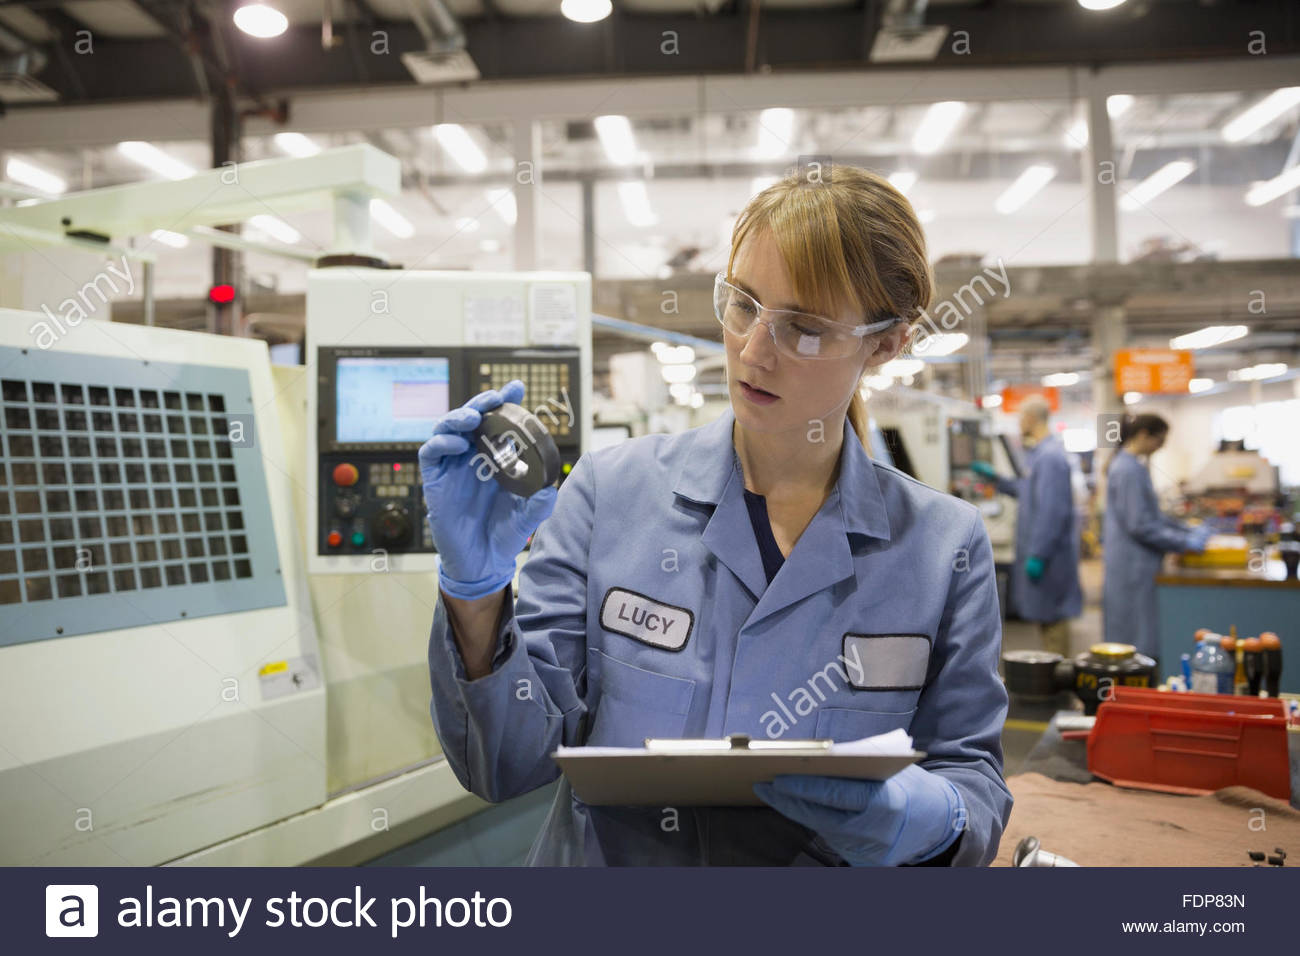 Worker with clipboard examining part in factory - Stock Image